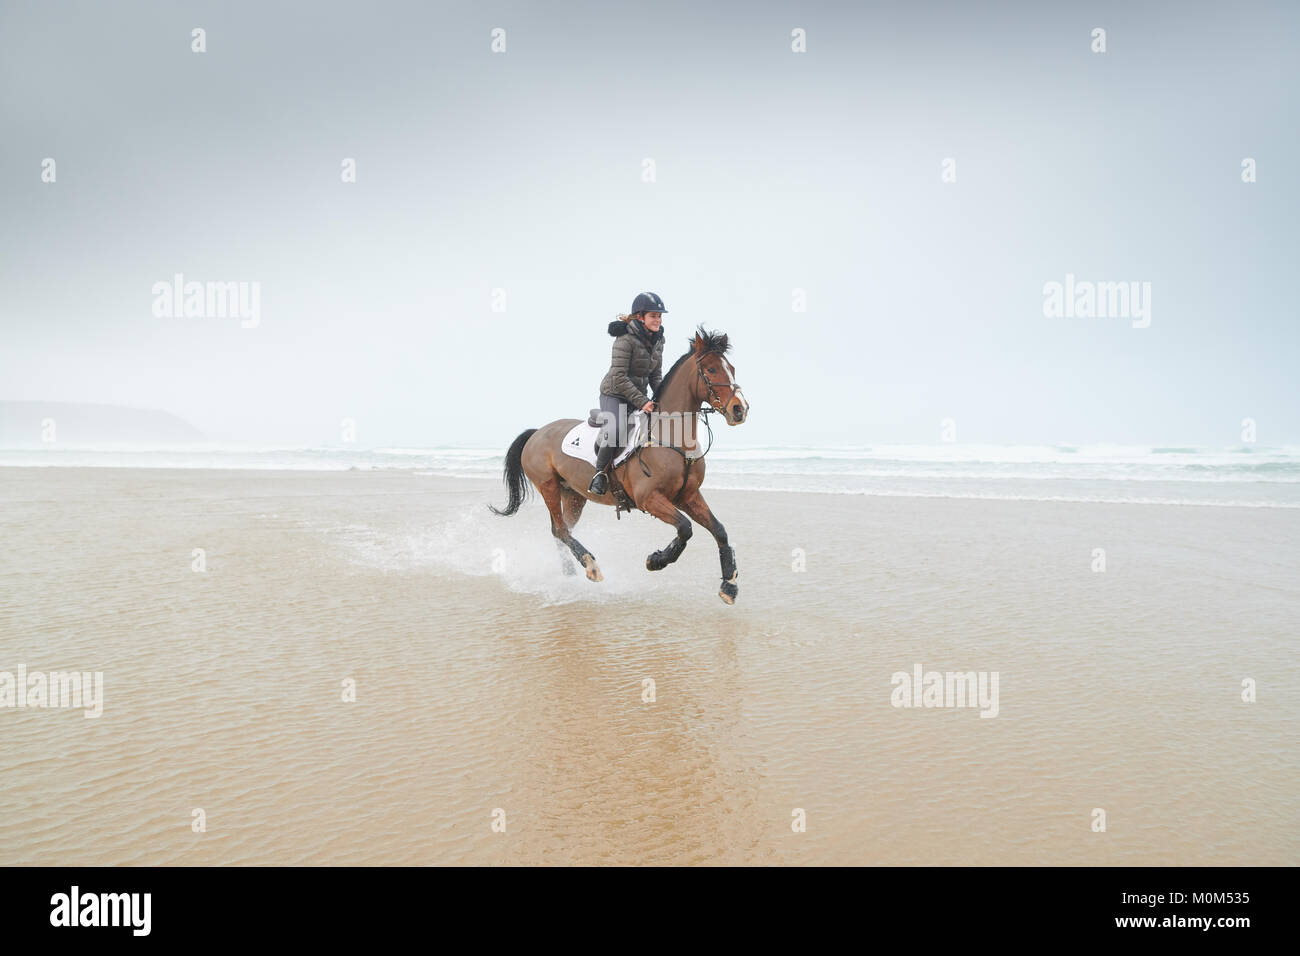 Horse rider riding from right to left through low tide, with noticeable water spray behind horse. Coast and overcast - Stock Image